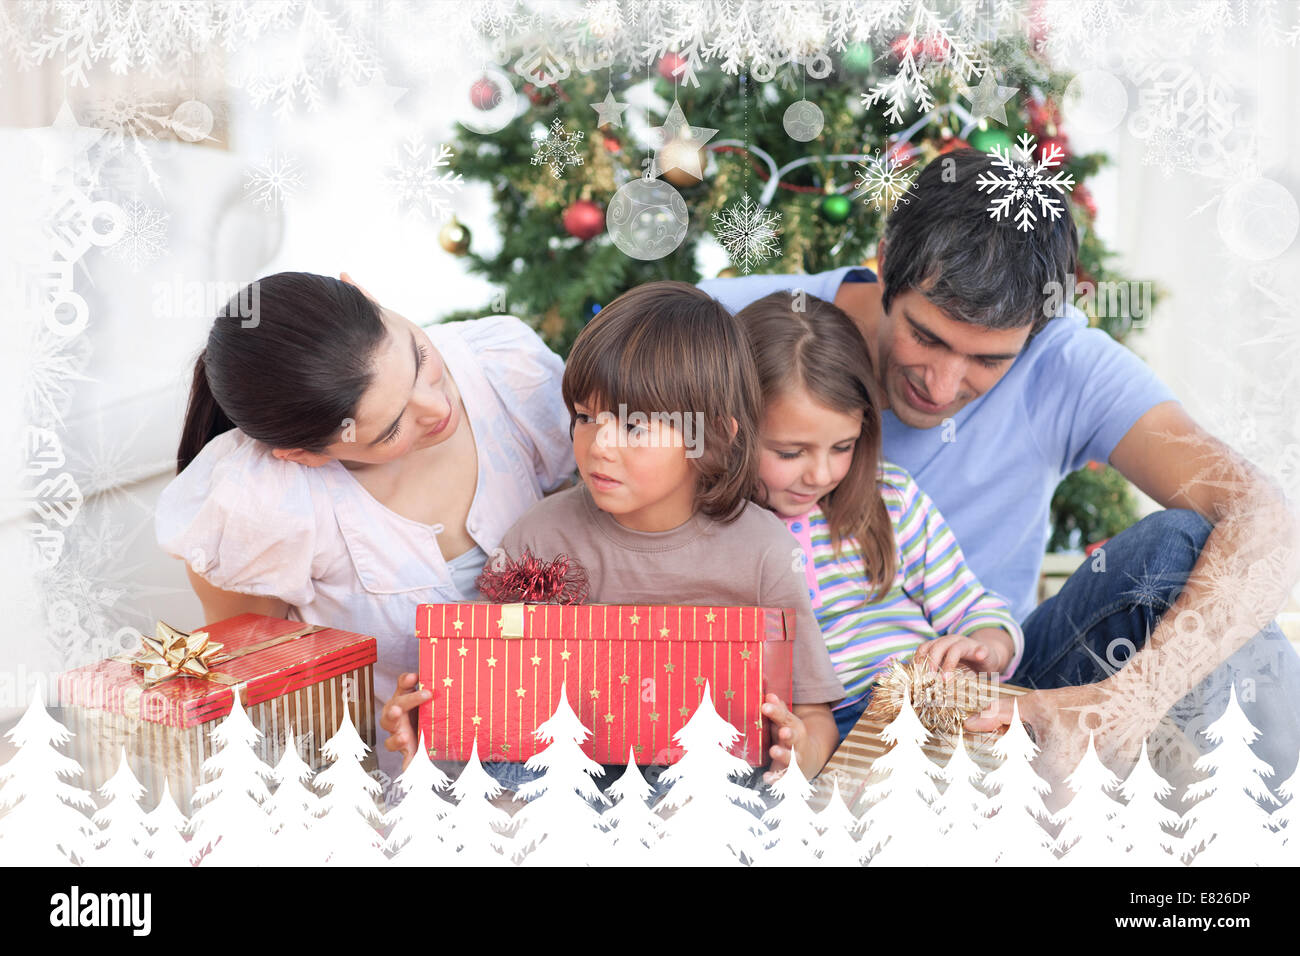 Composite image of family christmas portrait - Stock Image